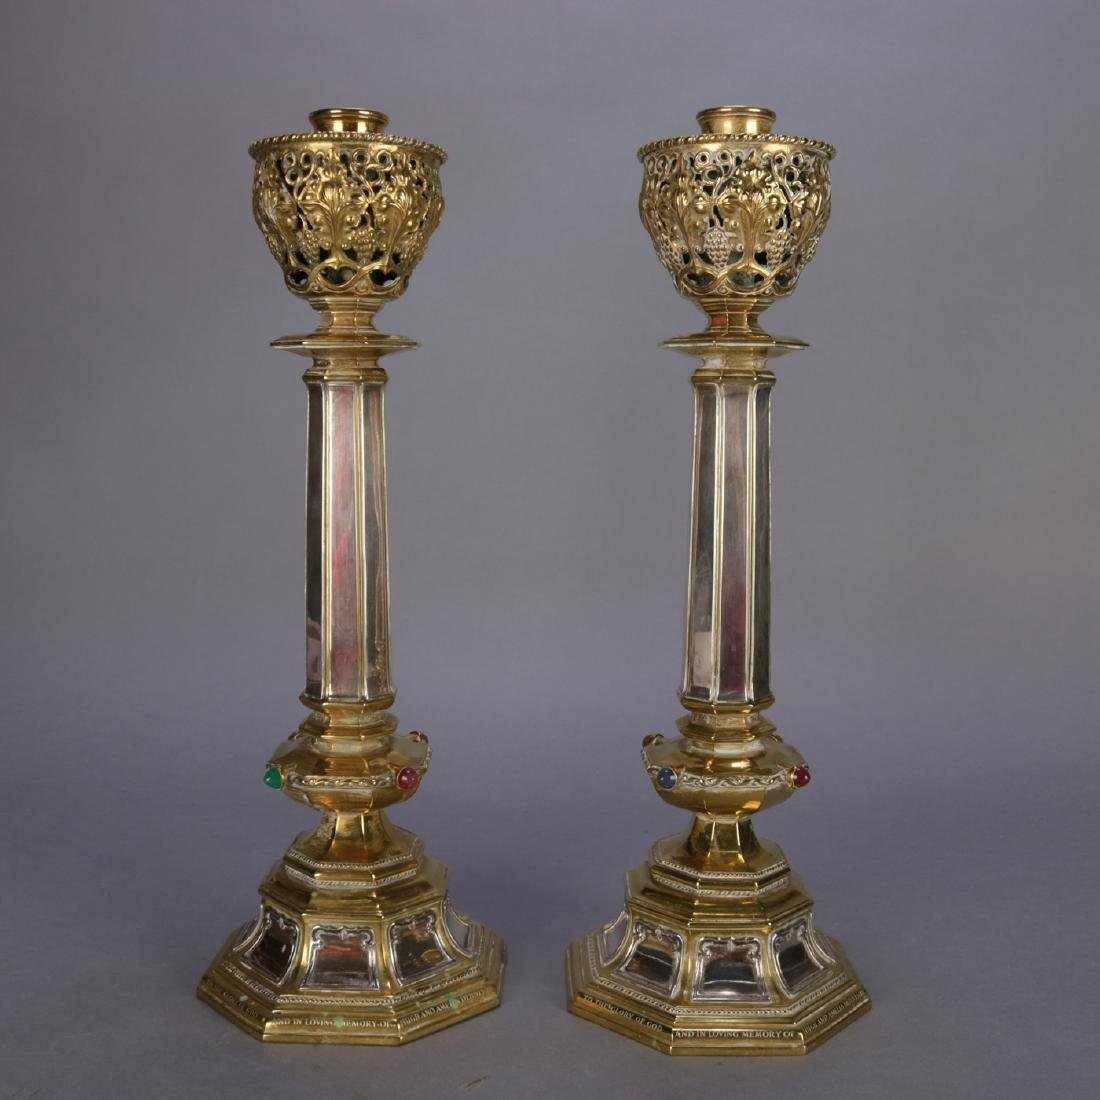 Antique Brass & Silver Jeweled Ceremonial Candle Sticks - 2